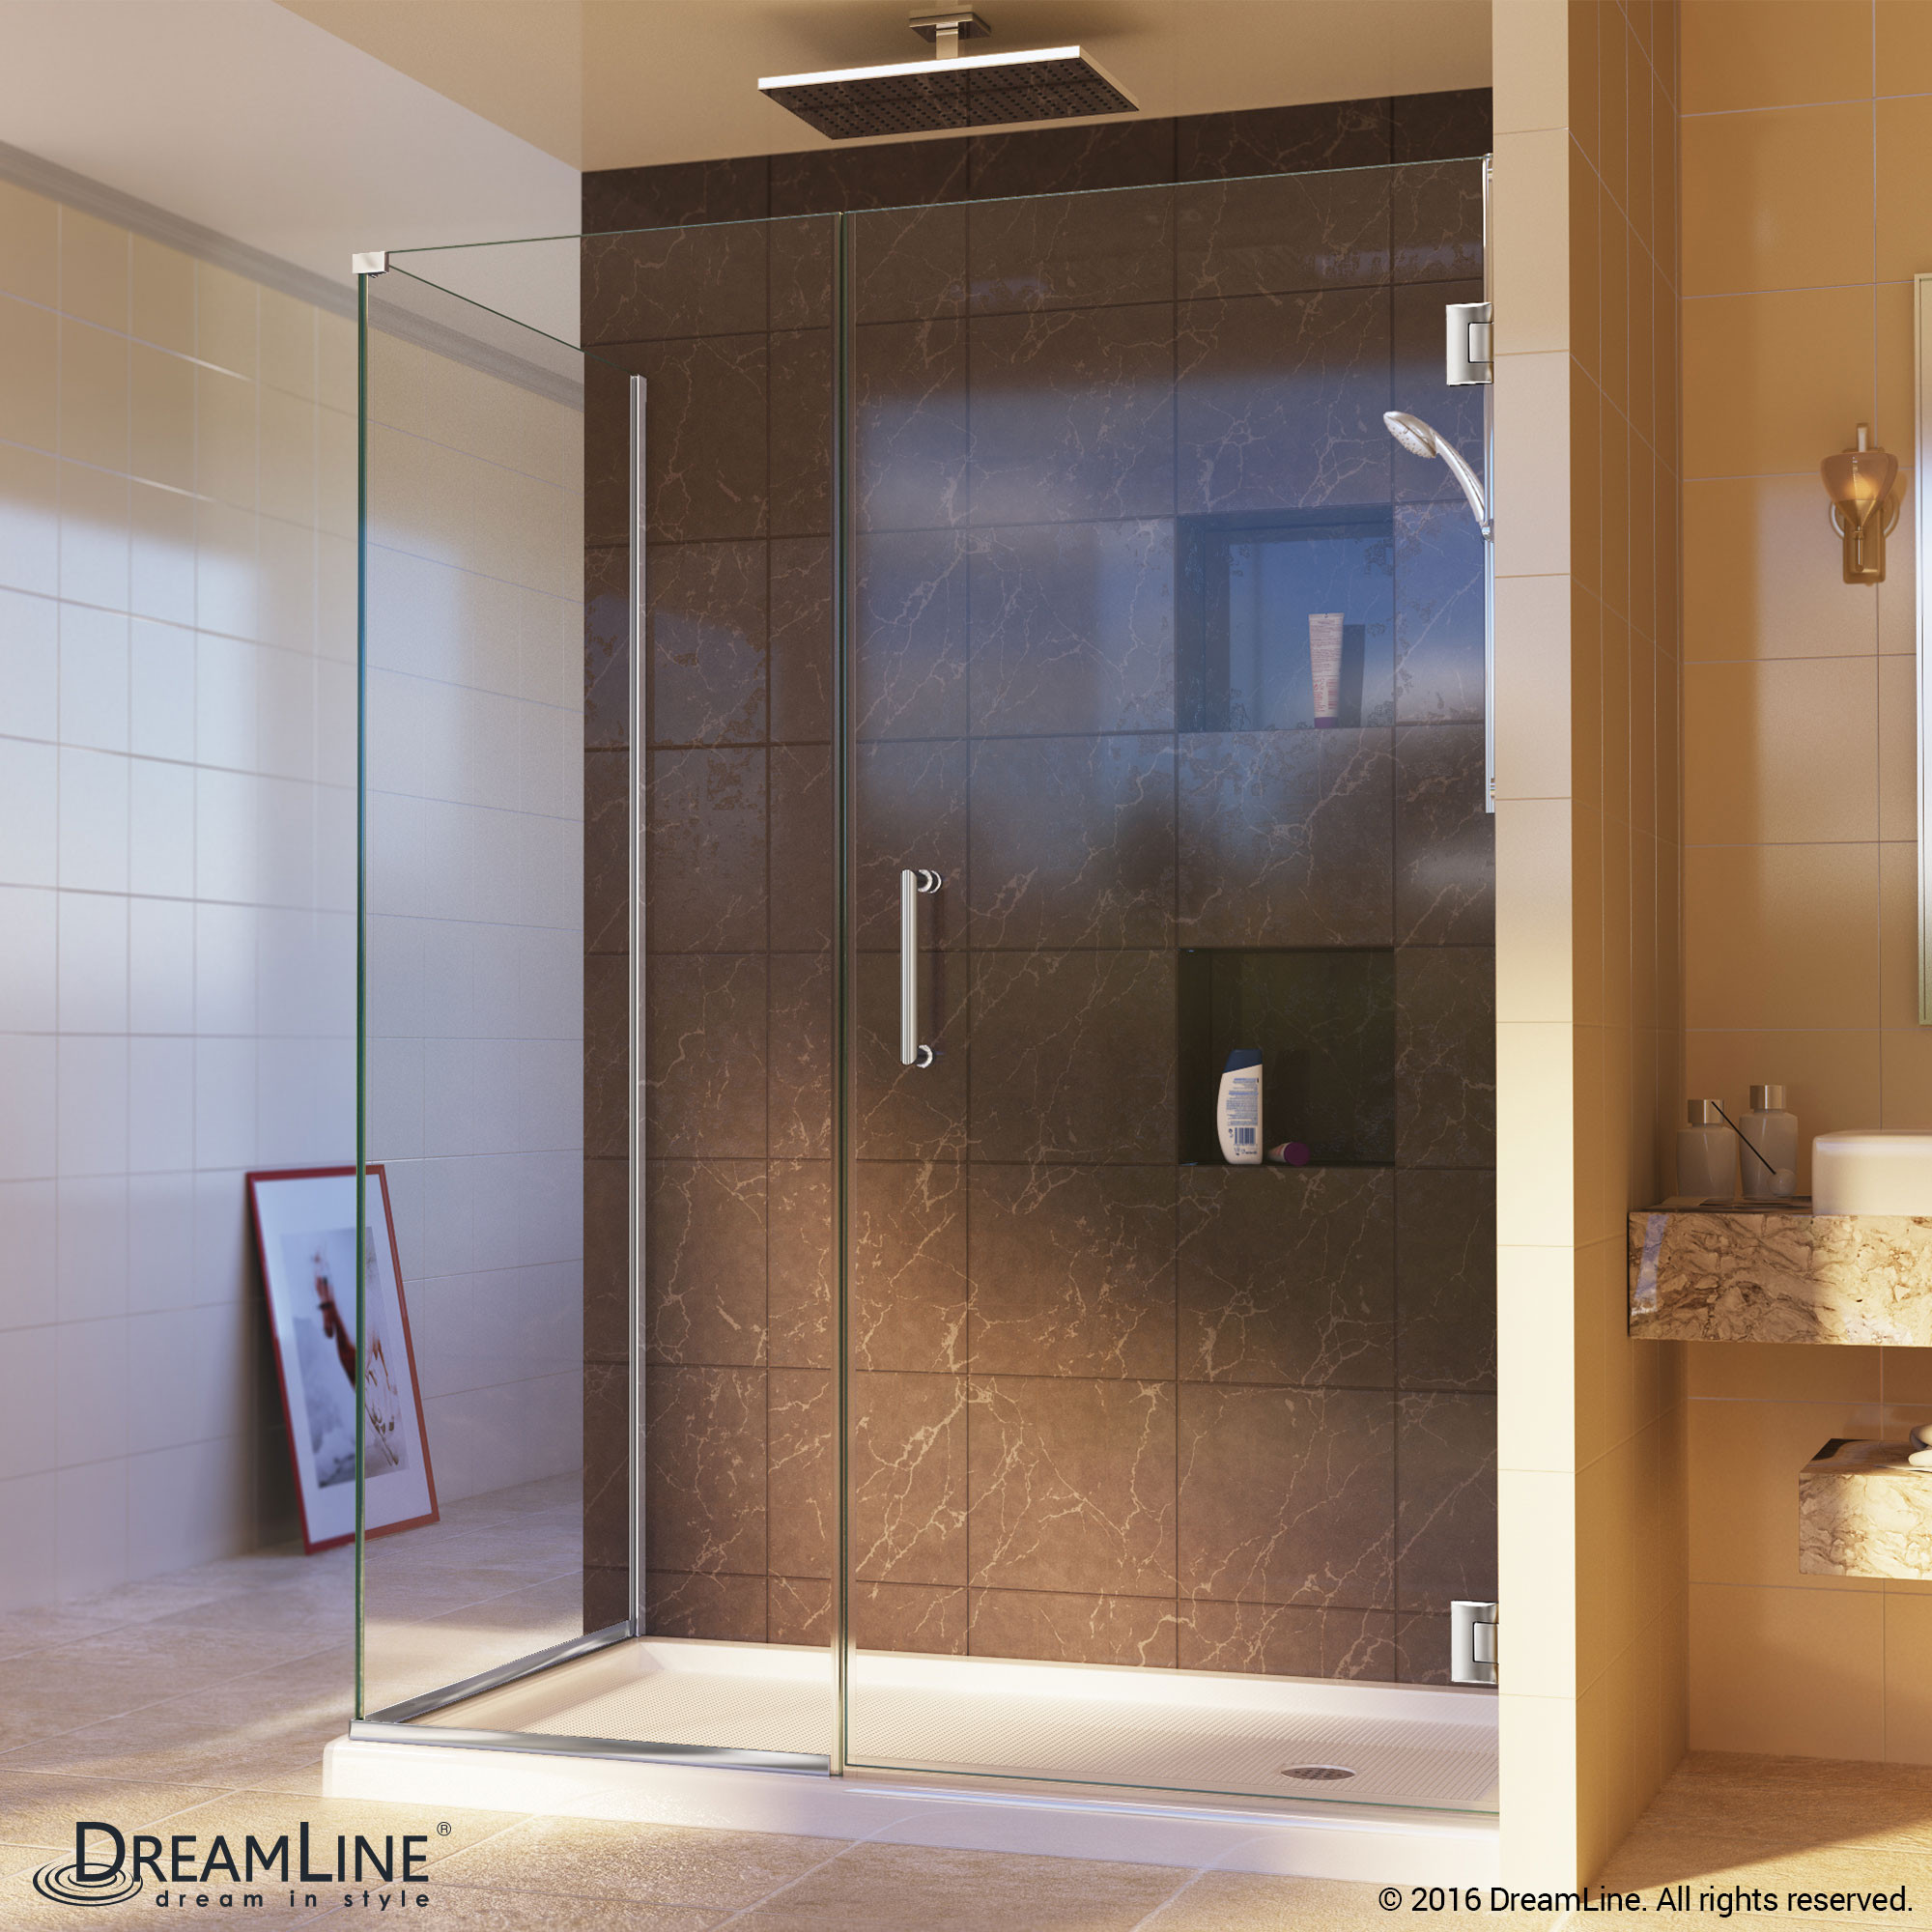 DreamLine SHEN-24500340-01 Unidoor Plus Hinged Shower Enclosure In Chrome Finish Hardware